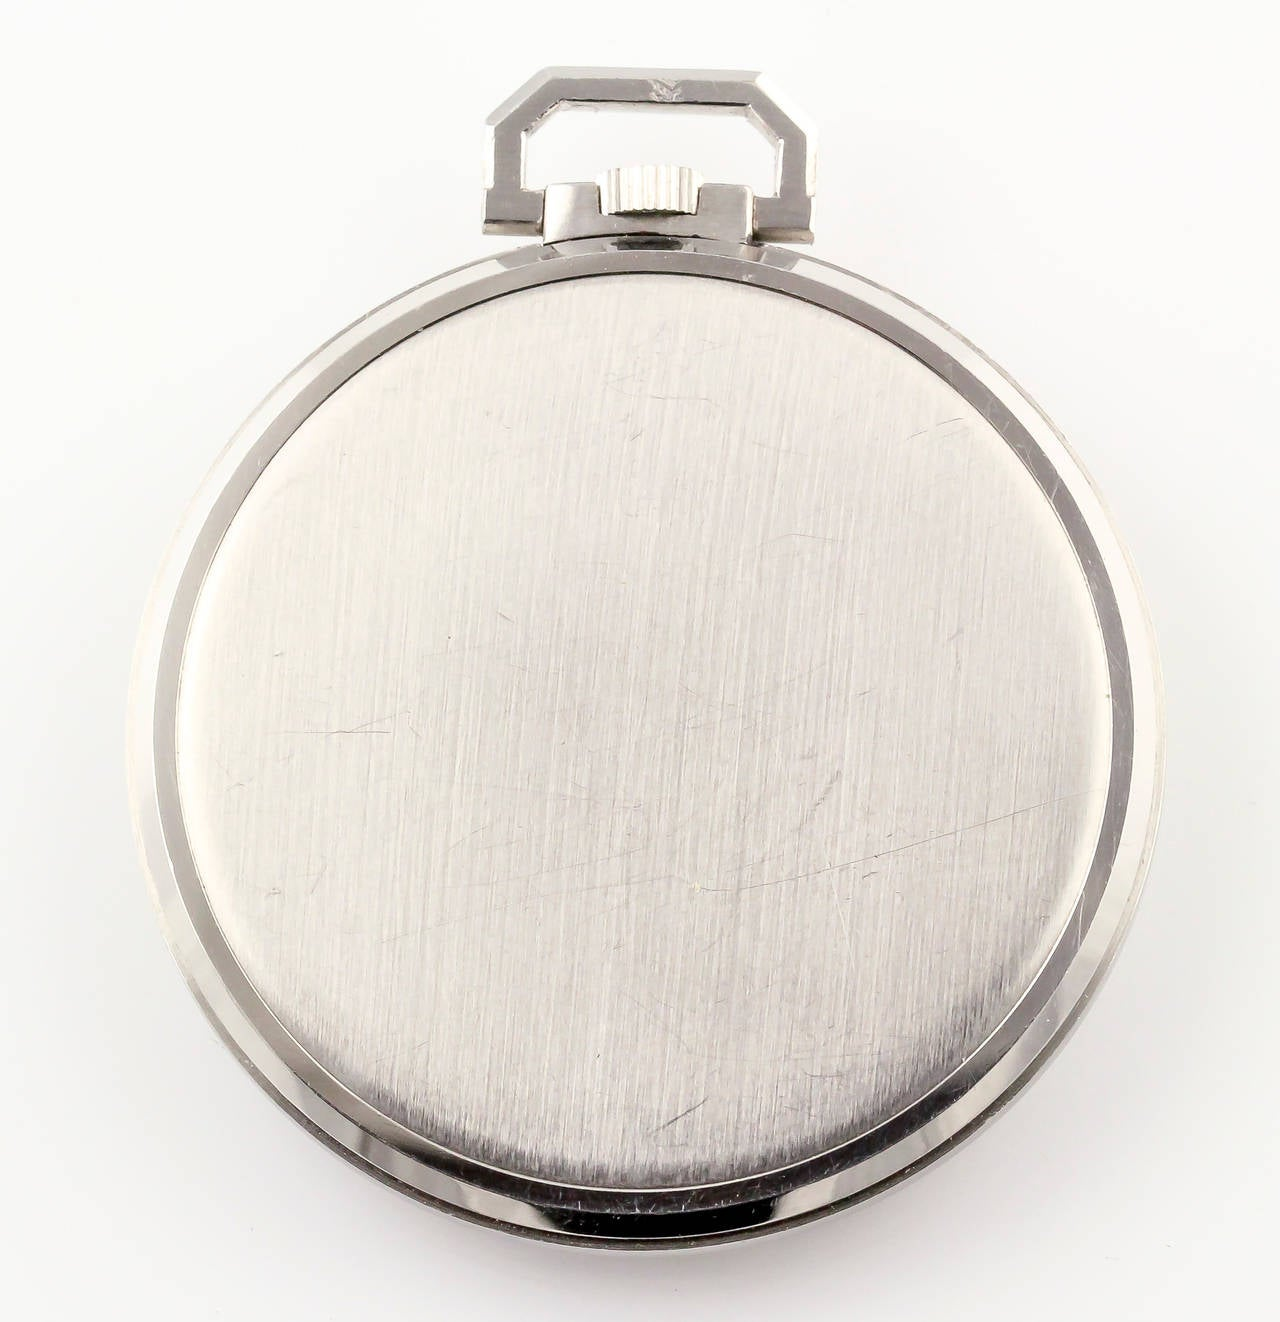 Elegant diamond and platinum pocket watch by Patek Philippe, circa 1960s. It features very high grade round and baguette cut diamonds at each hour. Manual wind movement.  Ref. 600. Recent model sold for over $21000 at Christie's Watches online